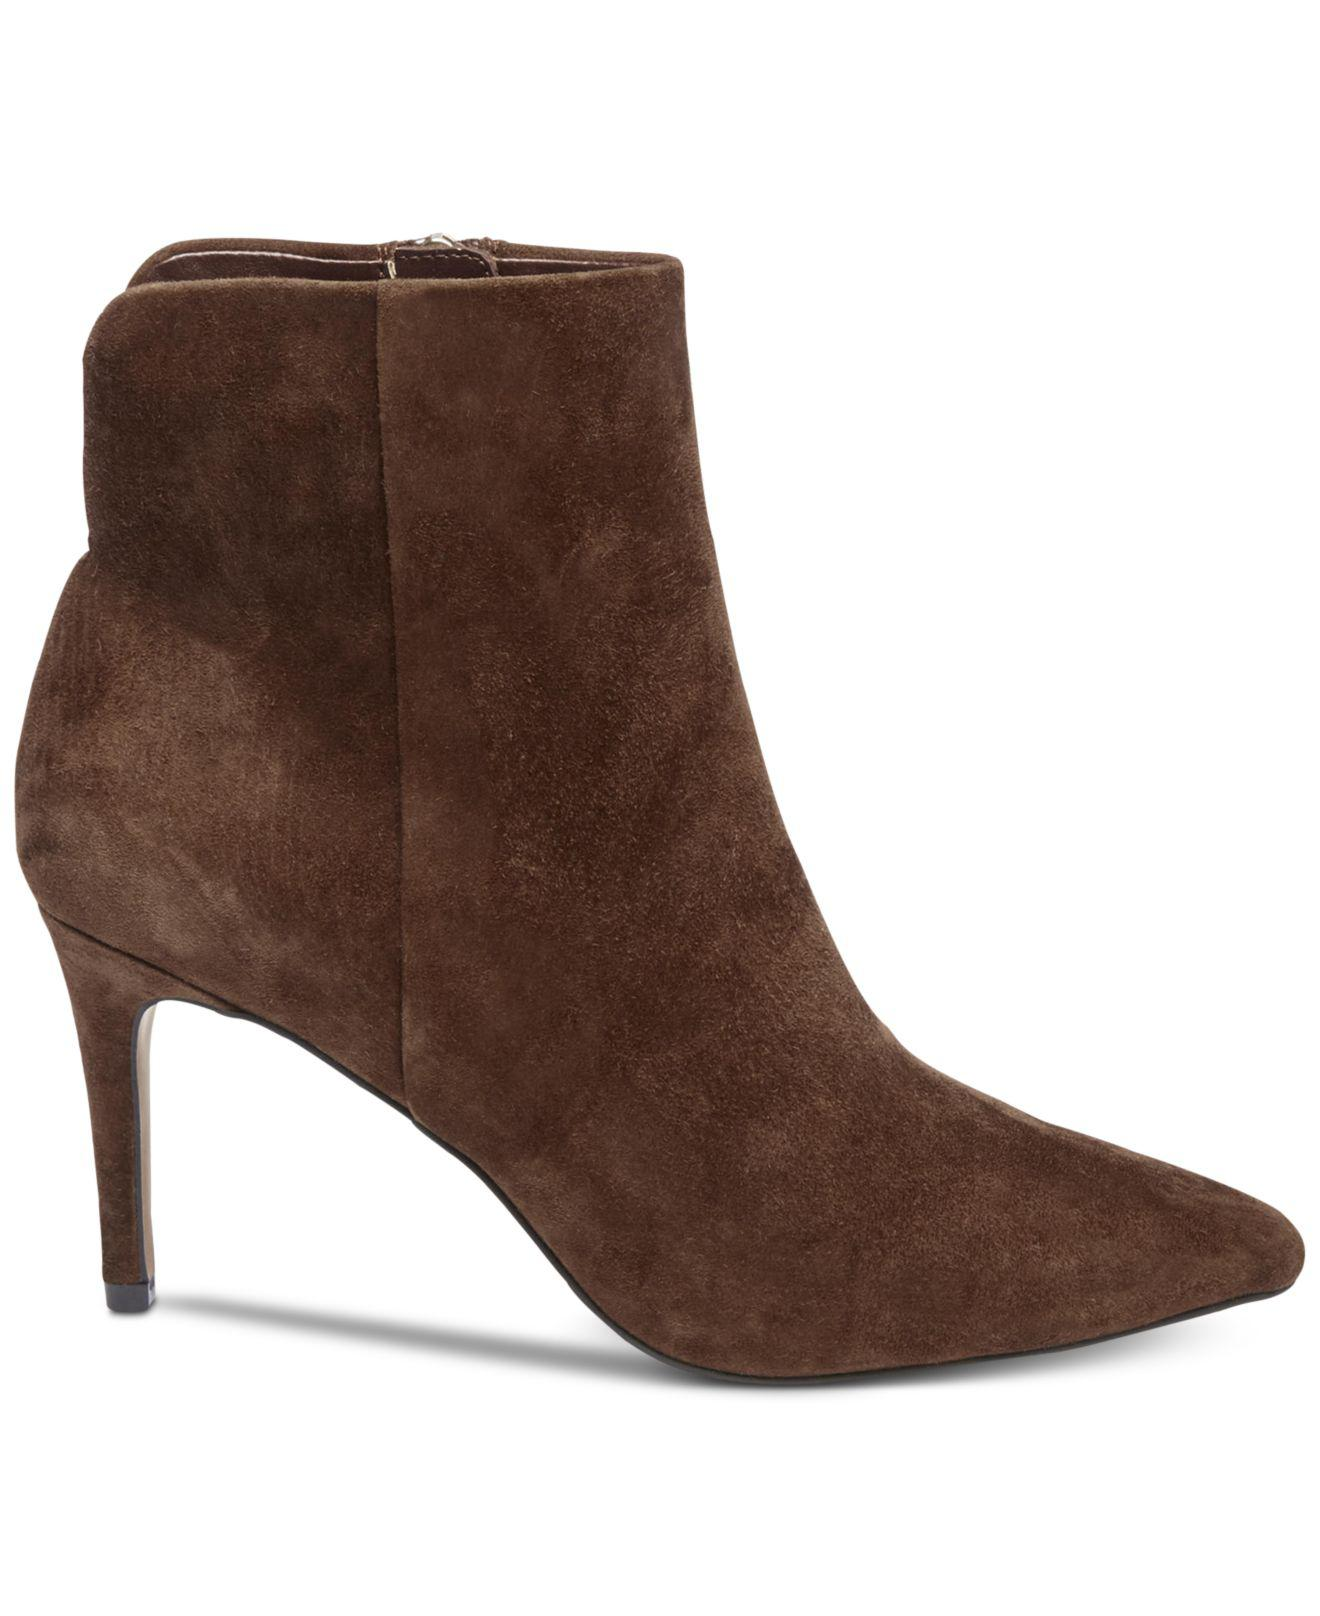 304d72dd686 Lyst - Steven by Steve Madden Leila Booties in Brown - Save 7%